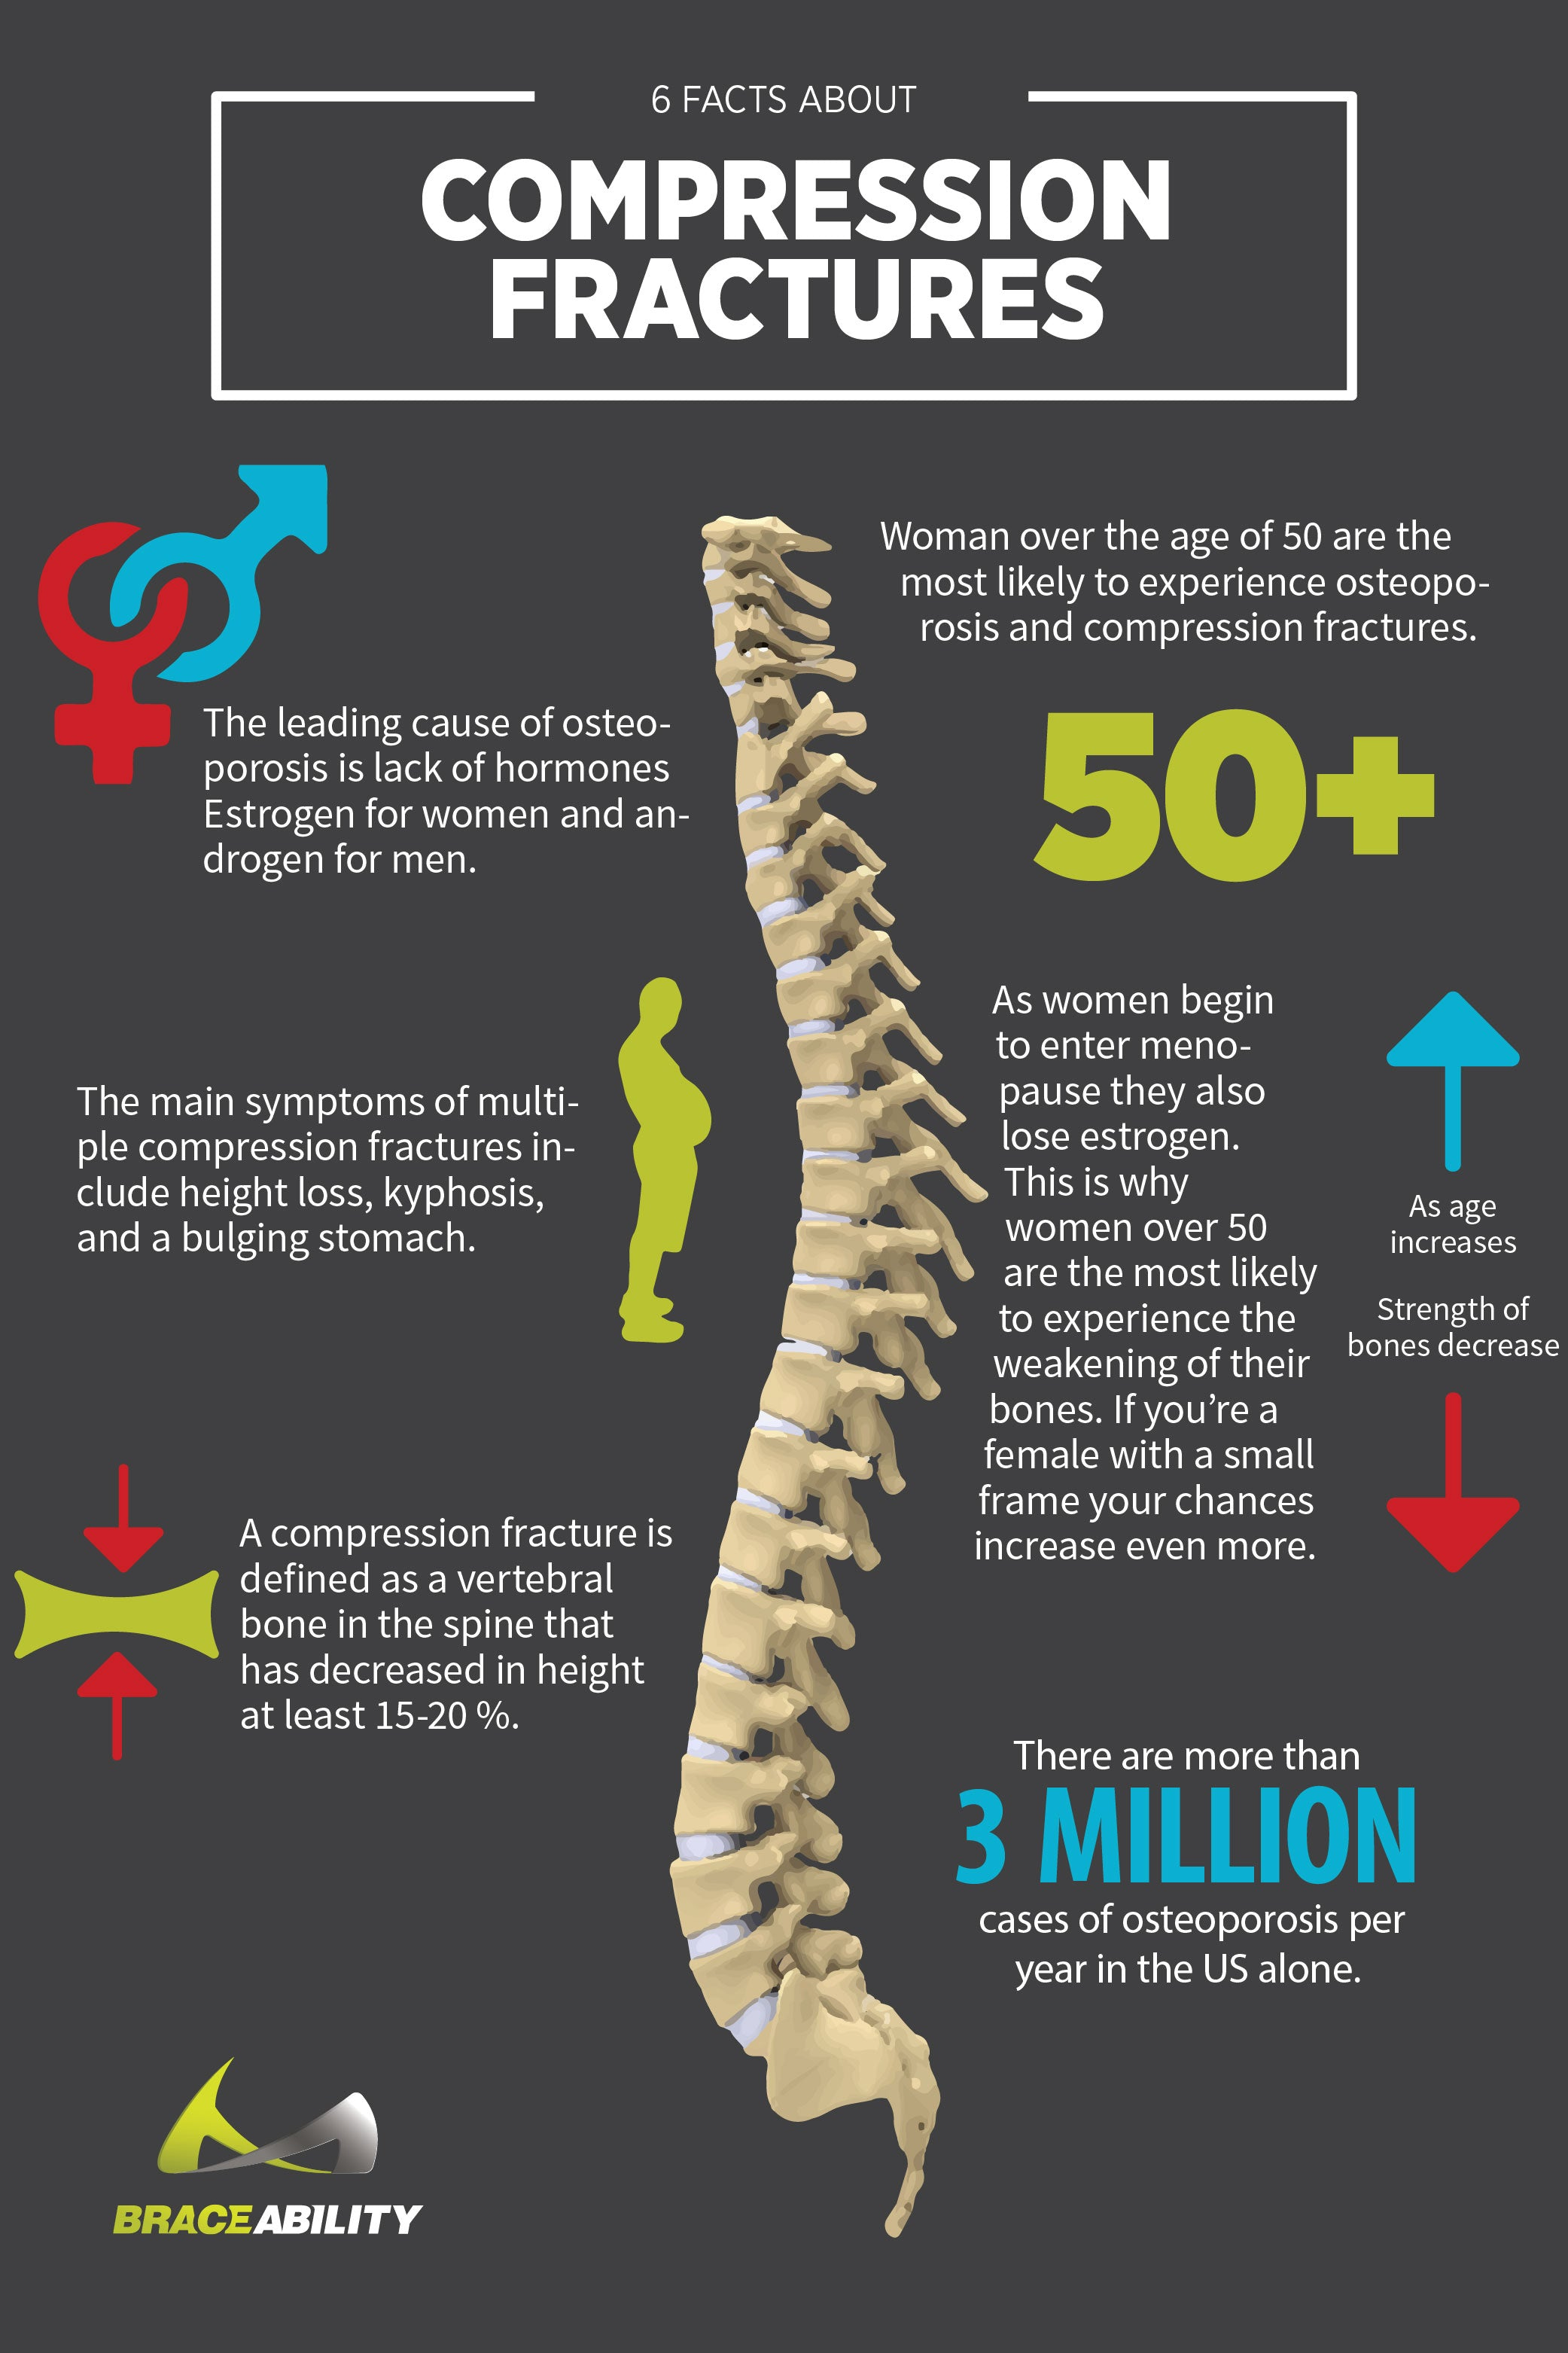 Infographic about how osteoporosis can cause compression fractures in your spine